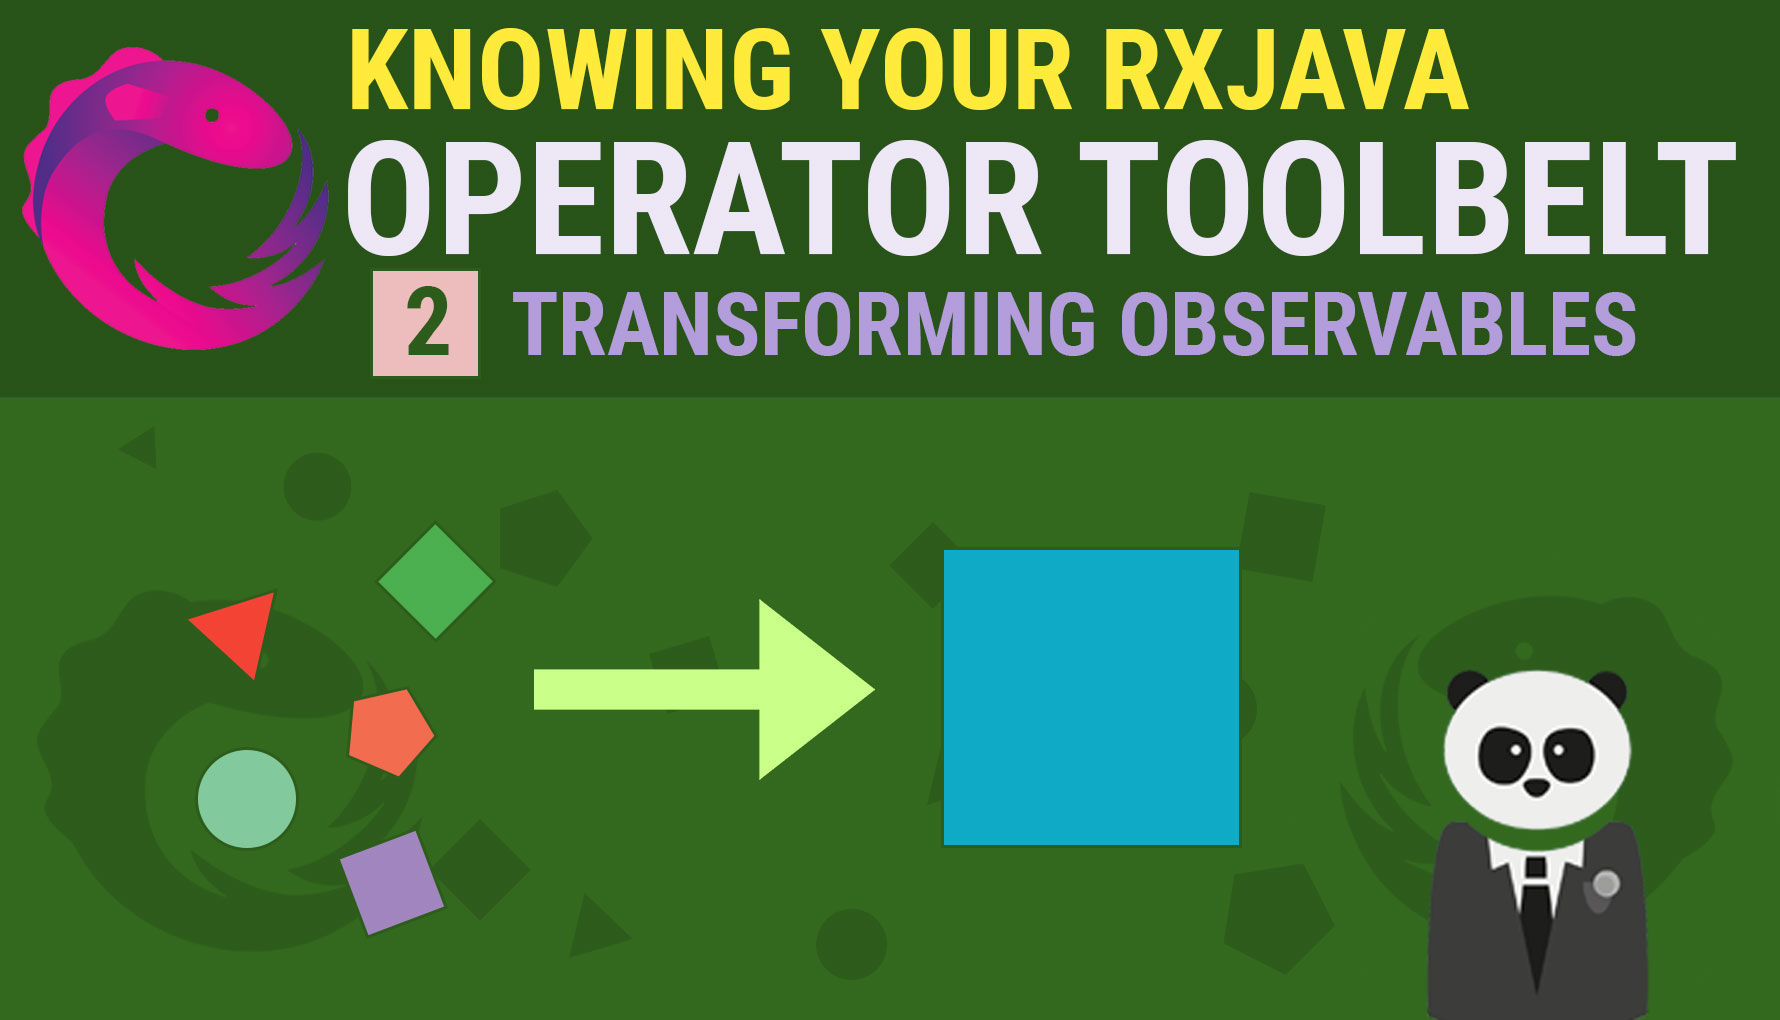 Knowing your RxJava Operator Toolbelt 2: Transforming Observables